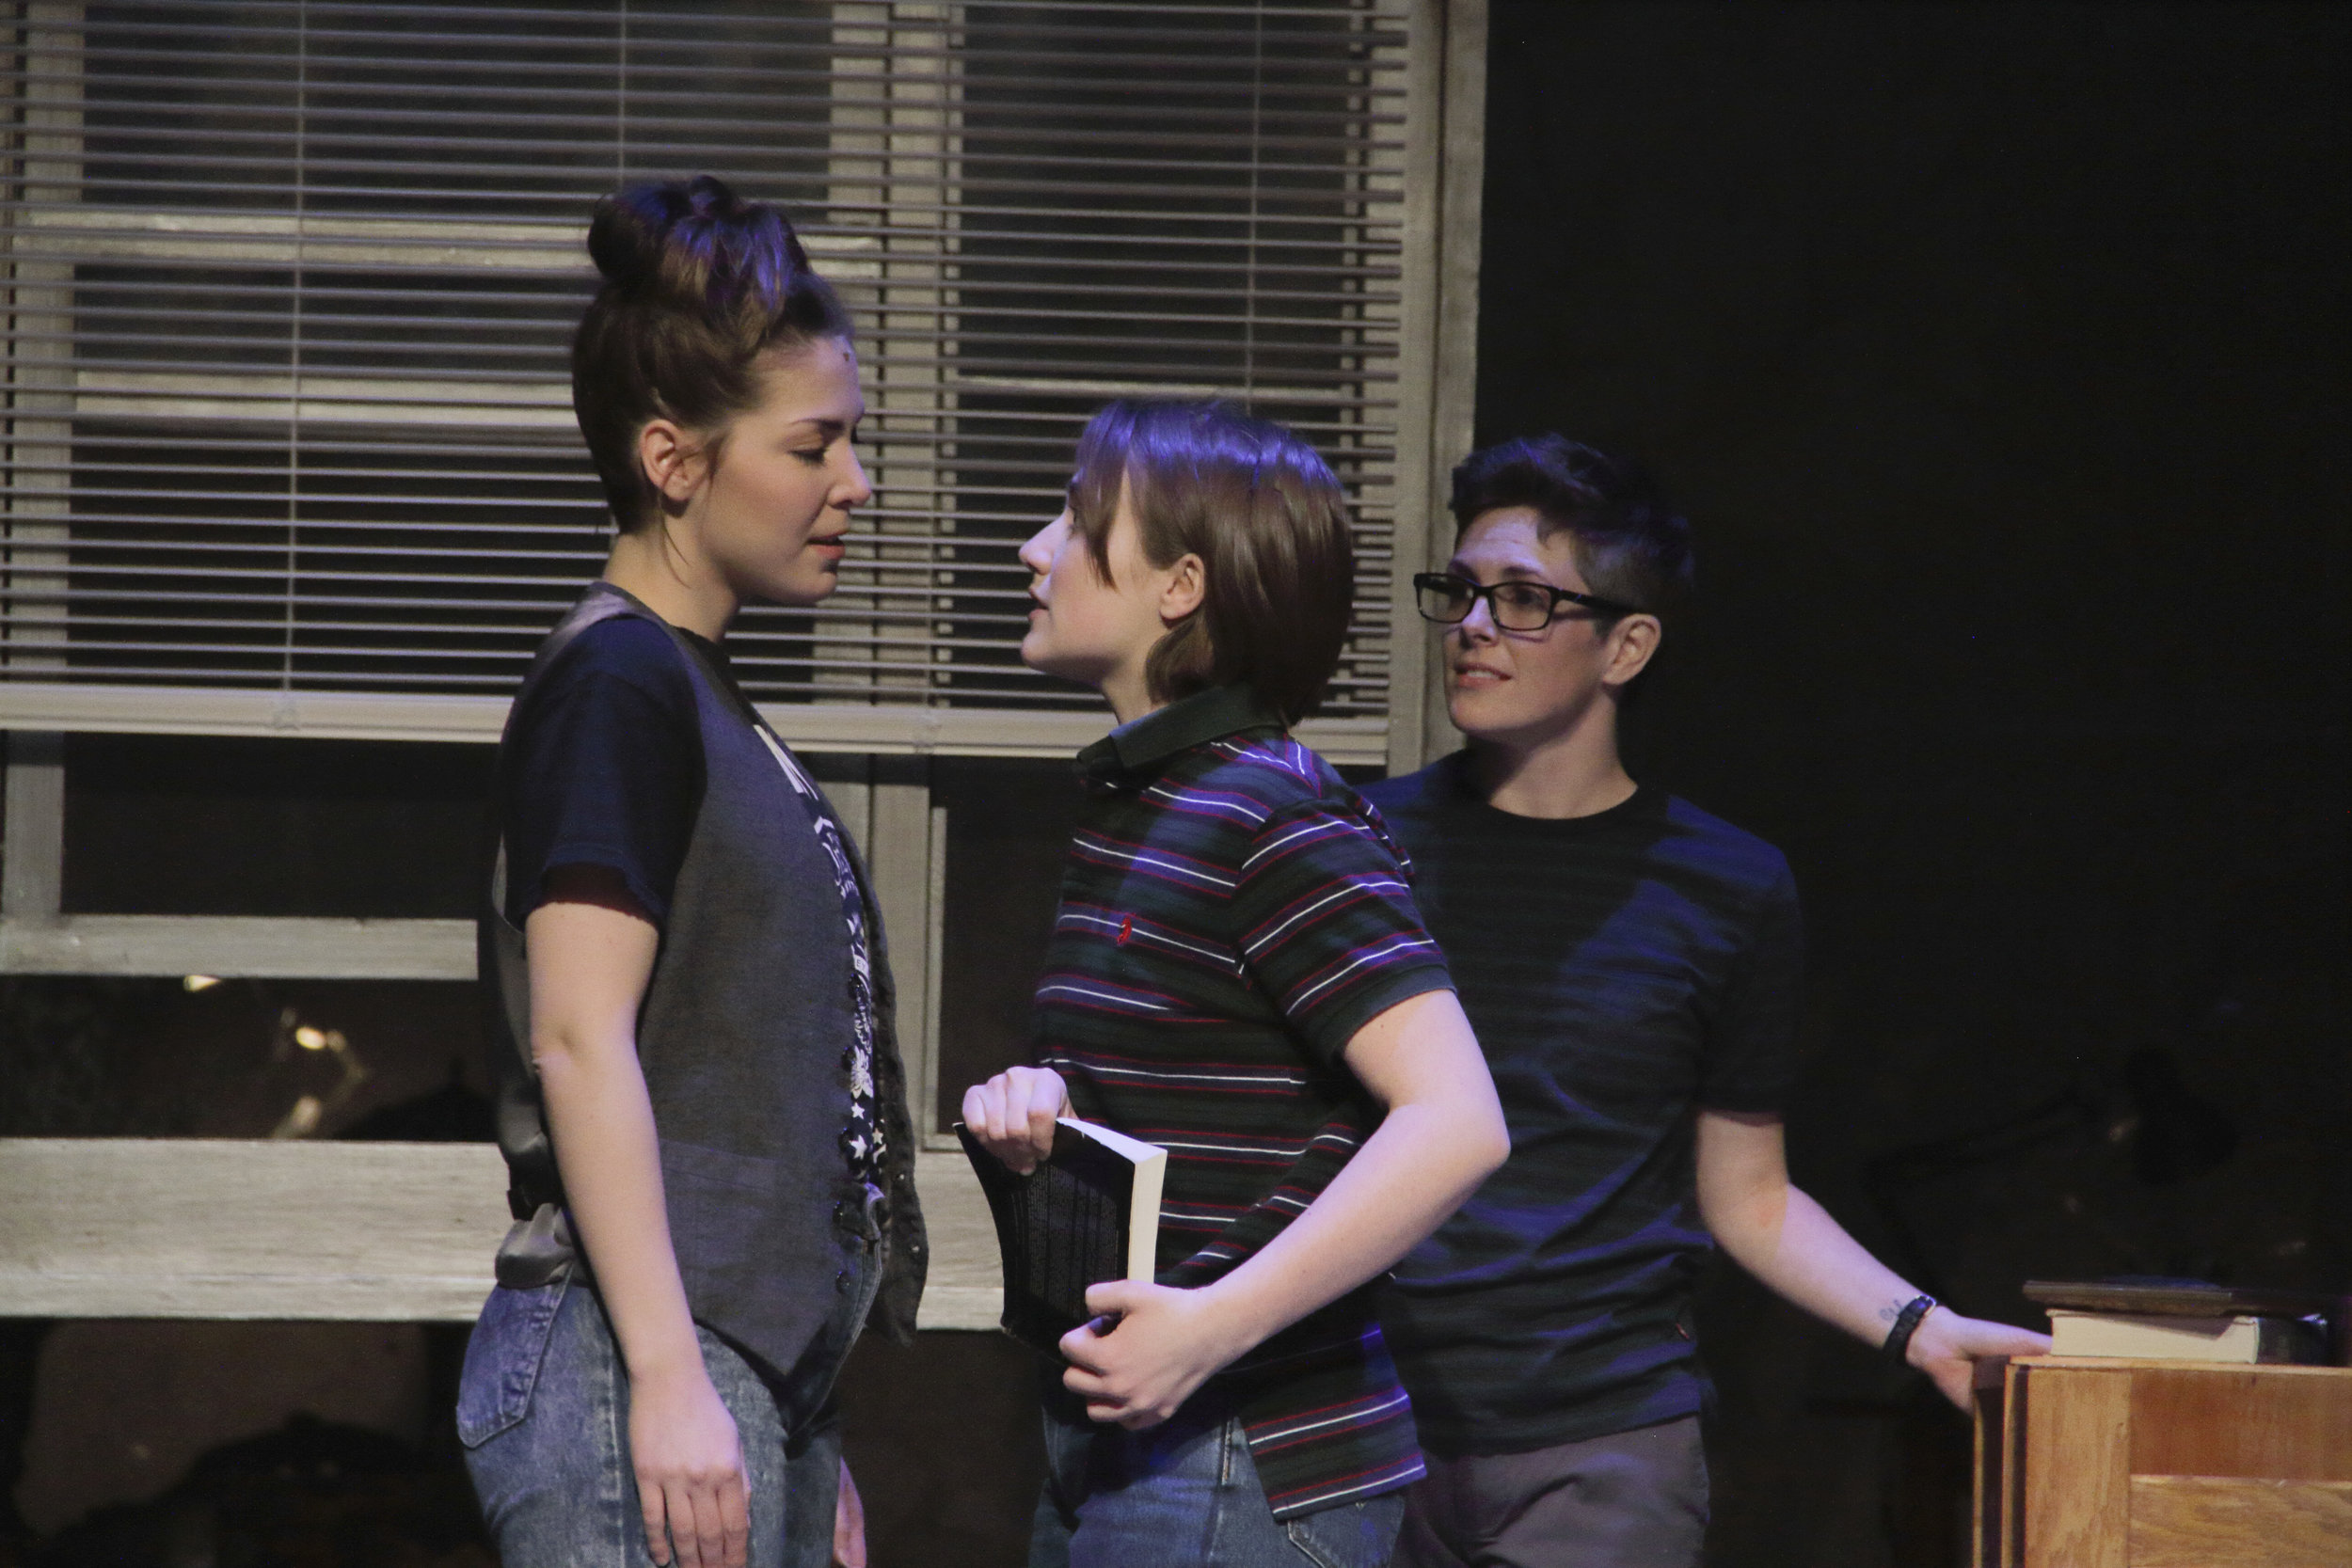 FunHome closeups 085  _ EDITED.jpg